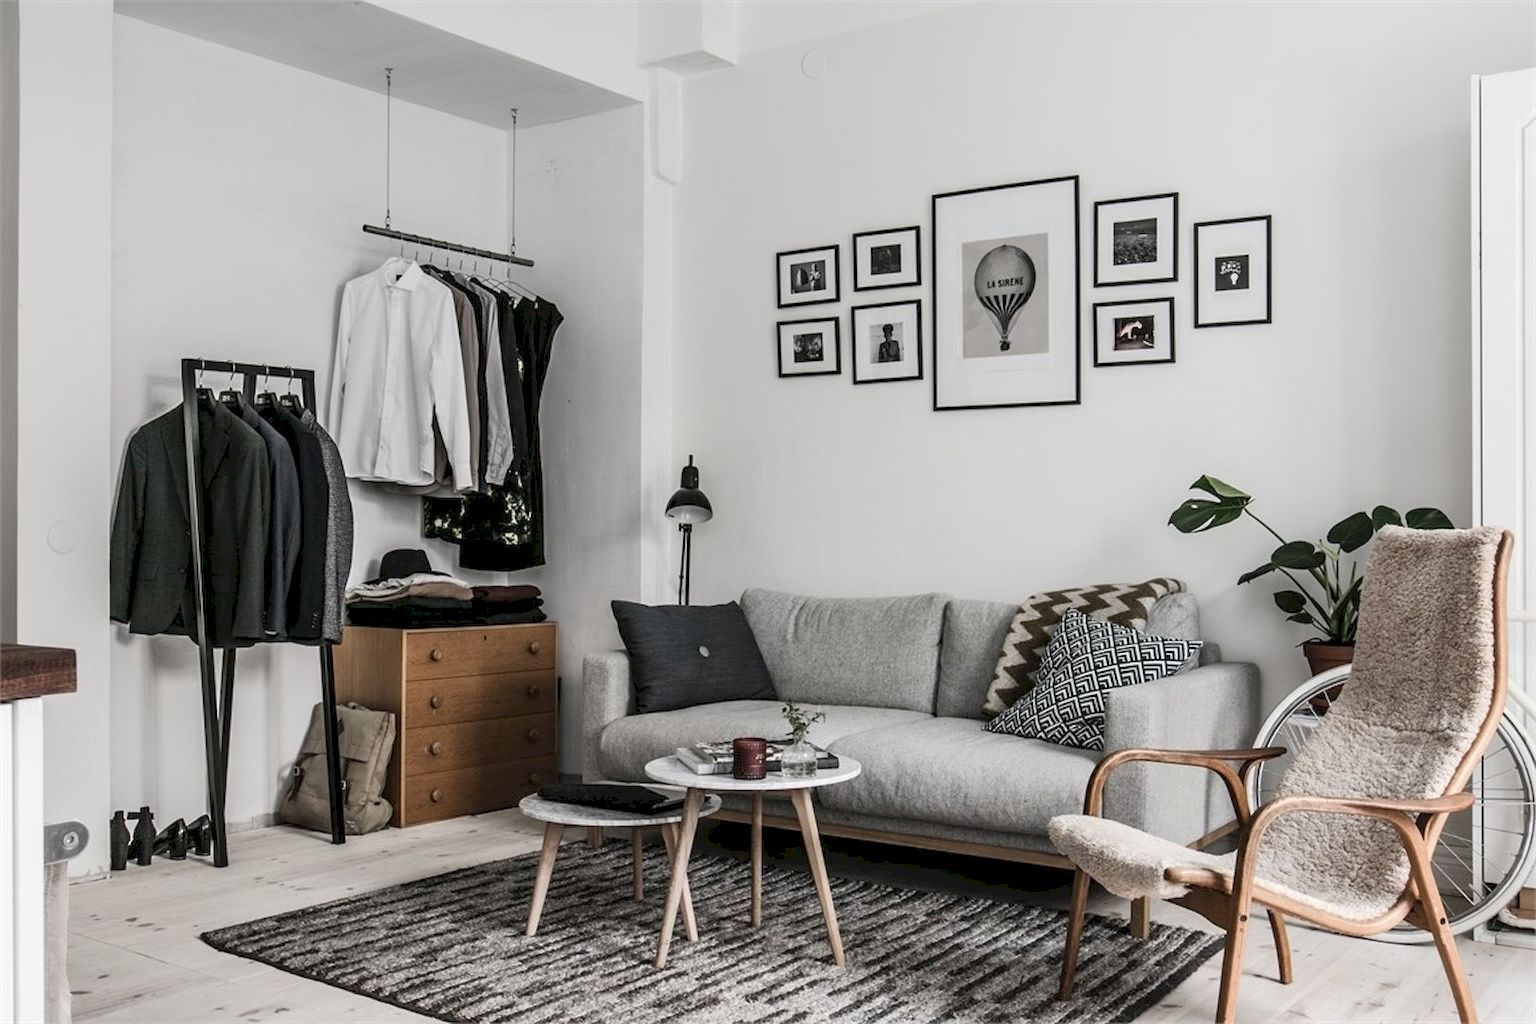 77 Elegant Scandinavian Interior Design Ideas With Small Spaces Pleasing Interior Design Living Room For Small Space Inspiration Design